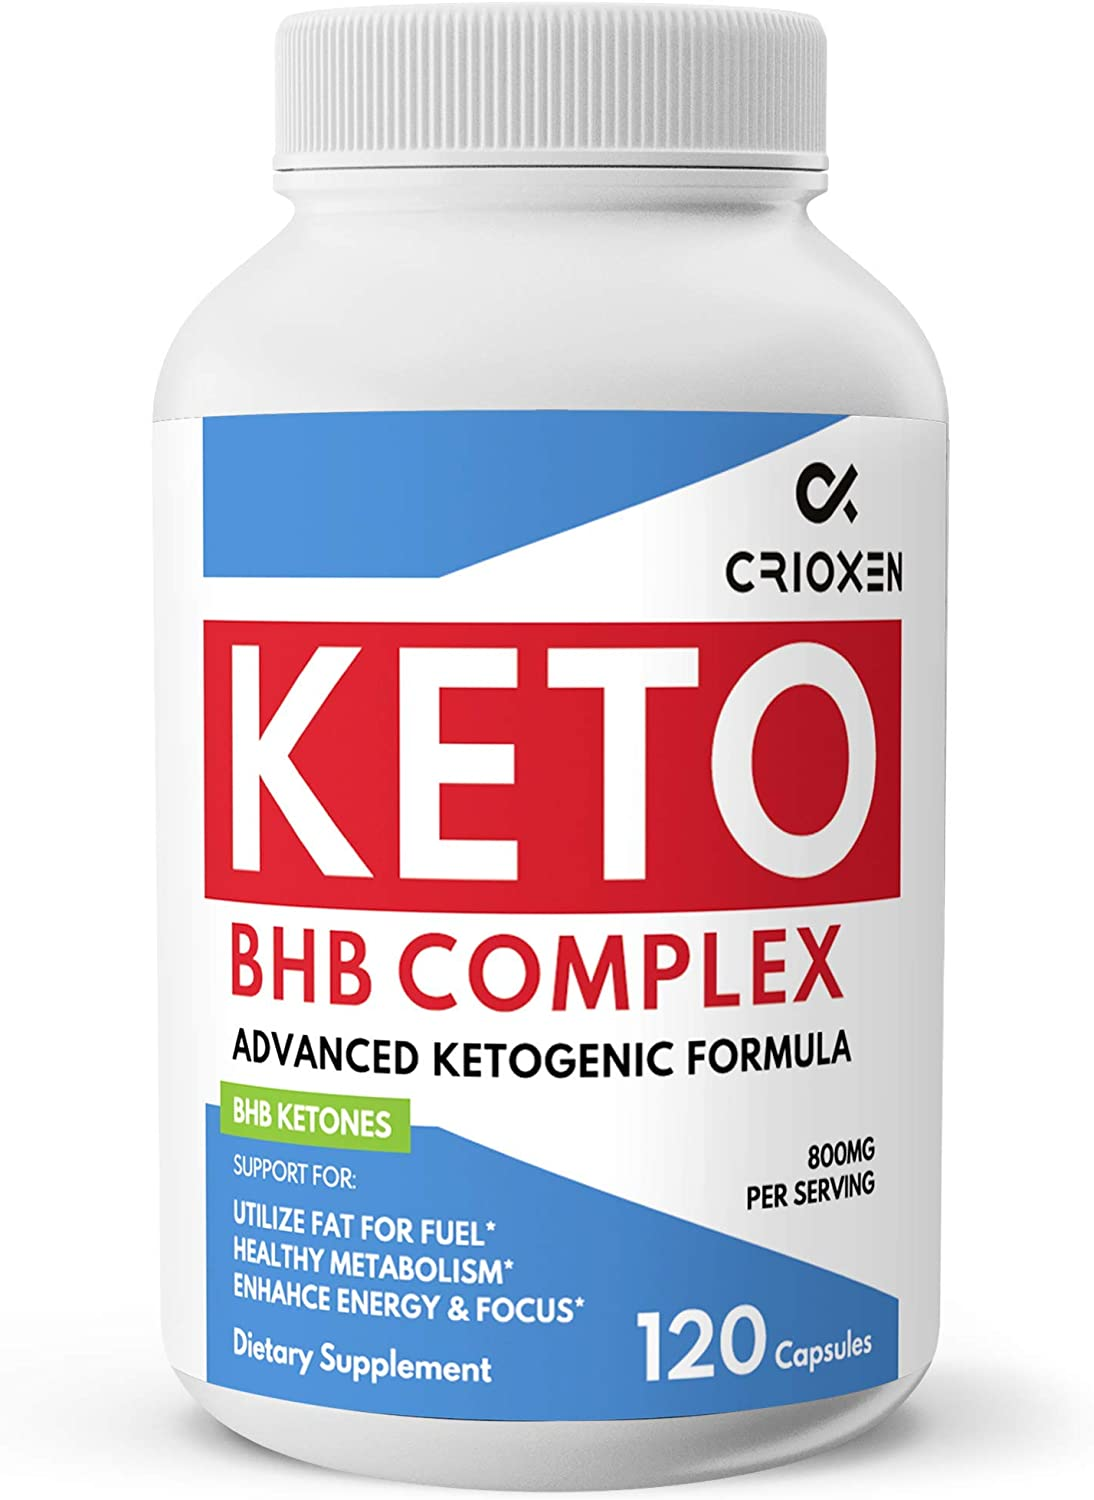 Keto Pure Diet Pills 120 Capsules- Advanced Keto Supplement Pure BHB Exogenous Instant Ketones Salts to Kickstart Ketosis Boost Energy and Focus for Men and Women 60 Day Supply